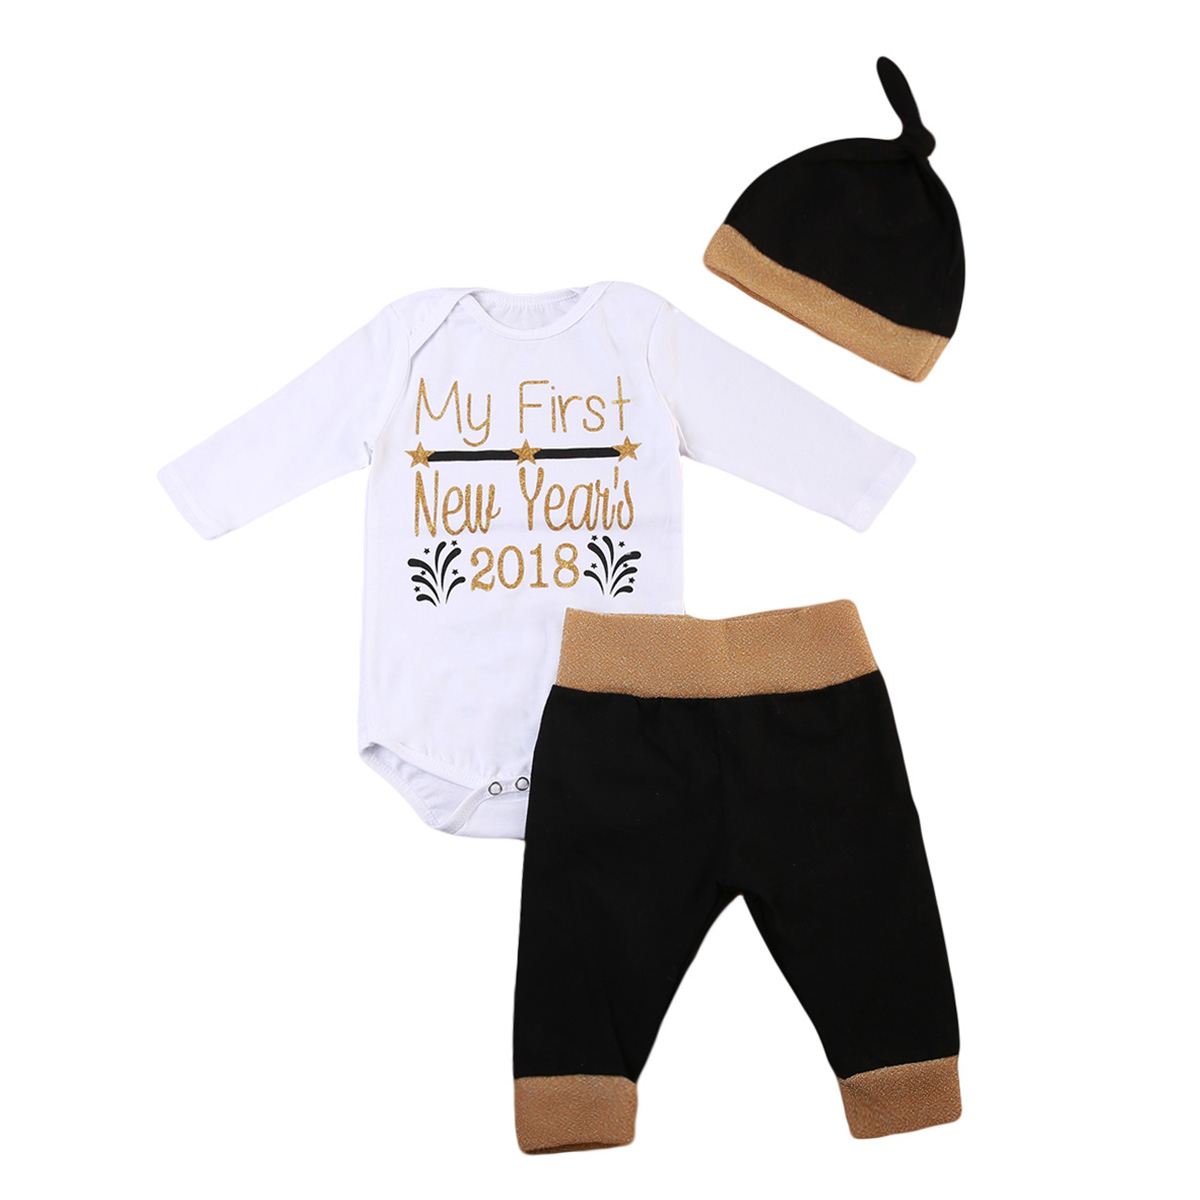 Cute Newborn Baby Boy Girls Clothes Set 2018 New Year Striped Cotton Long Sleeve Bodysuit Jumpsuit Outfit Clothes fashion 2pcs set newborn baby girls jumpsuit toddler girls flower pattern outfit clothes romper bodysuit pants